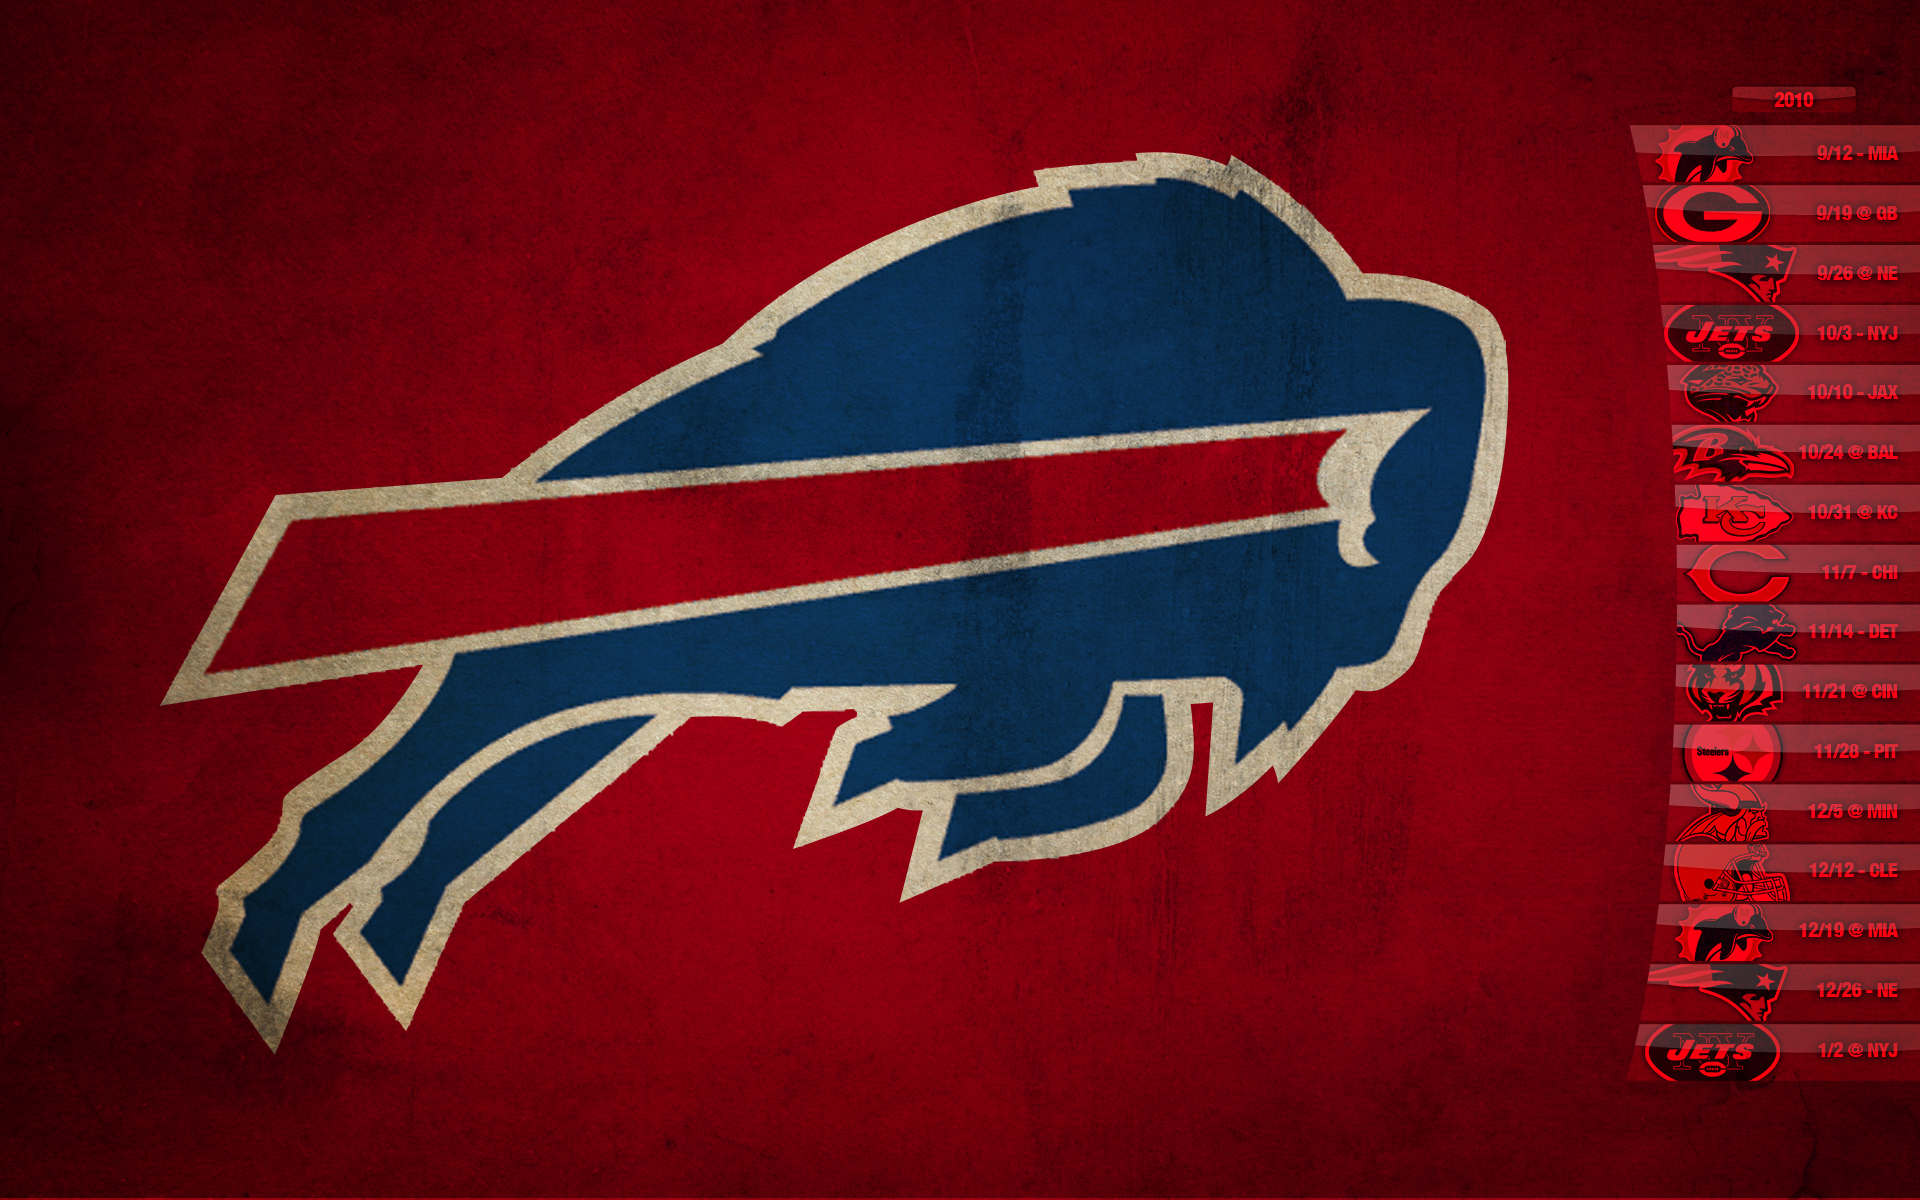 Buffalo Bills wallpaper HD desktop wallpaper Buffalo Bills 1920x1200